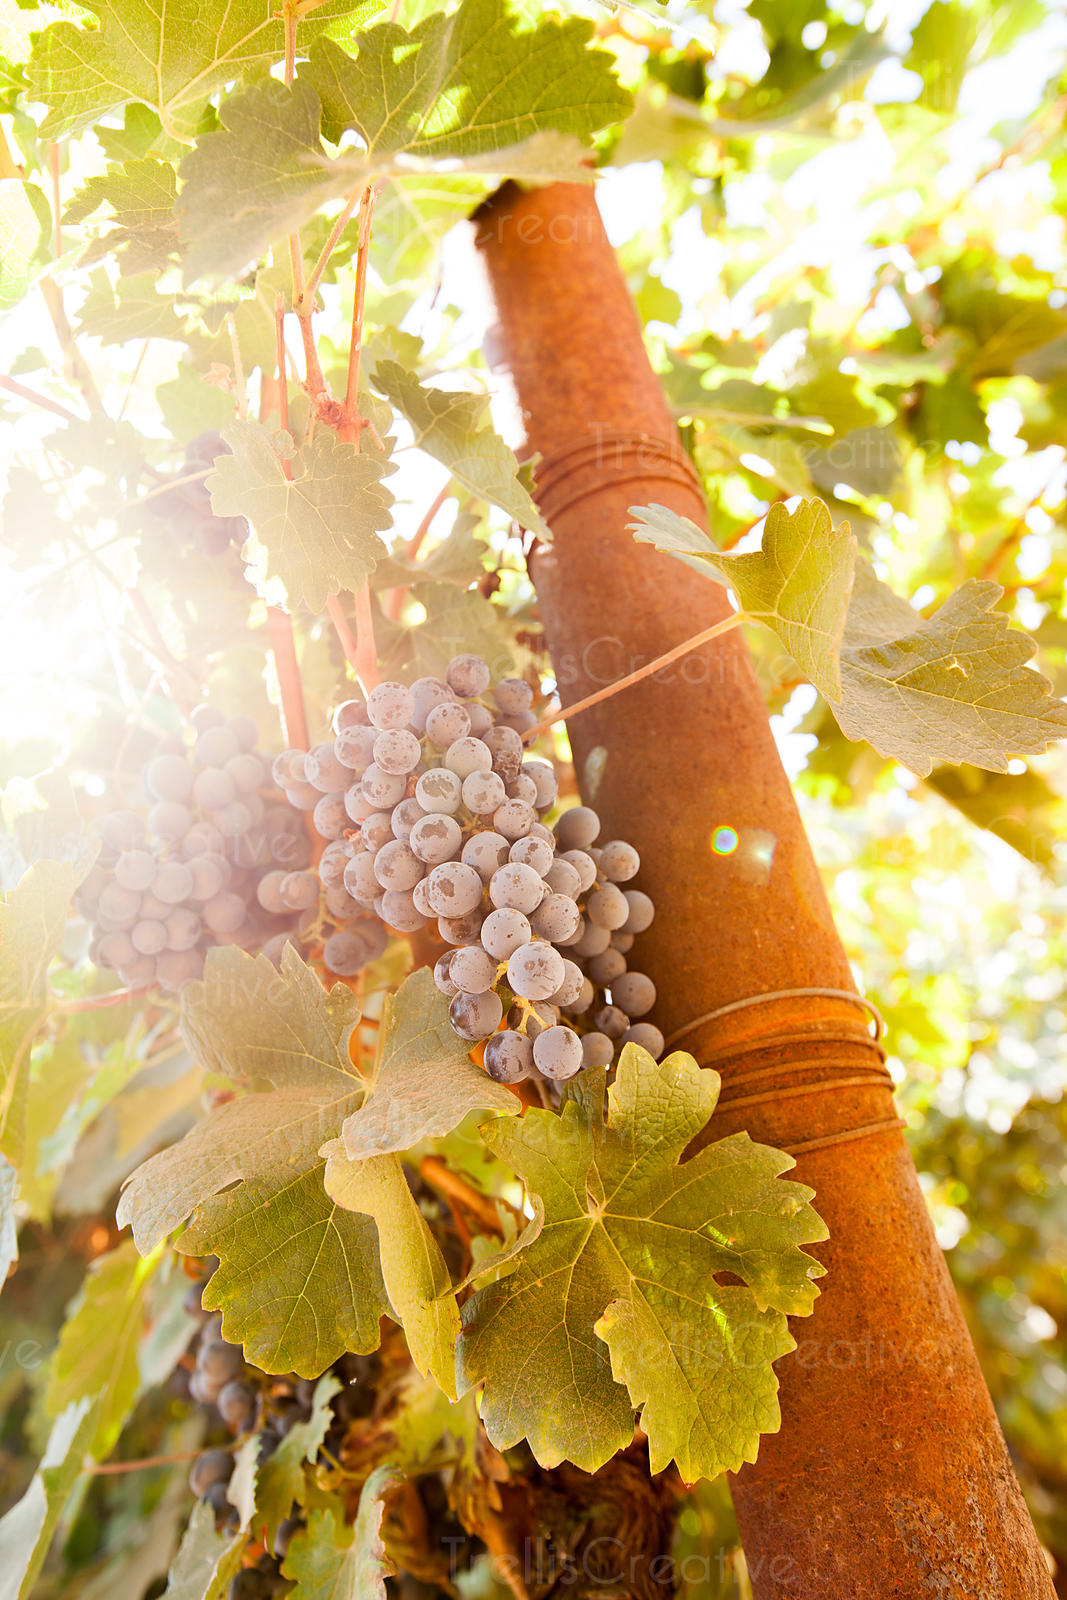 Sunlight streams through the grape clusters on the vine